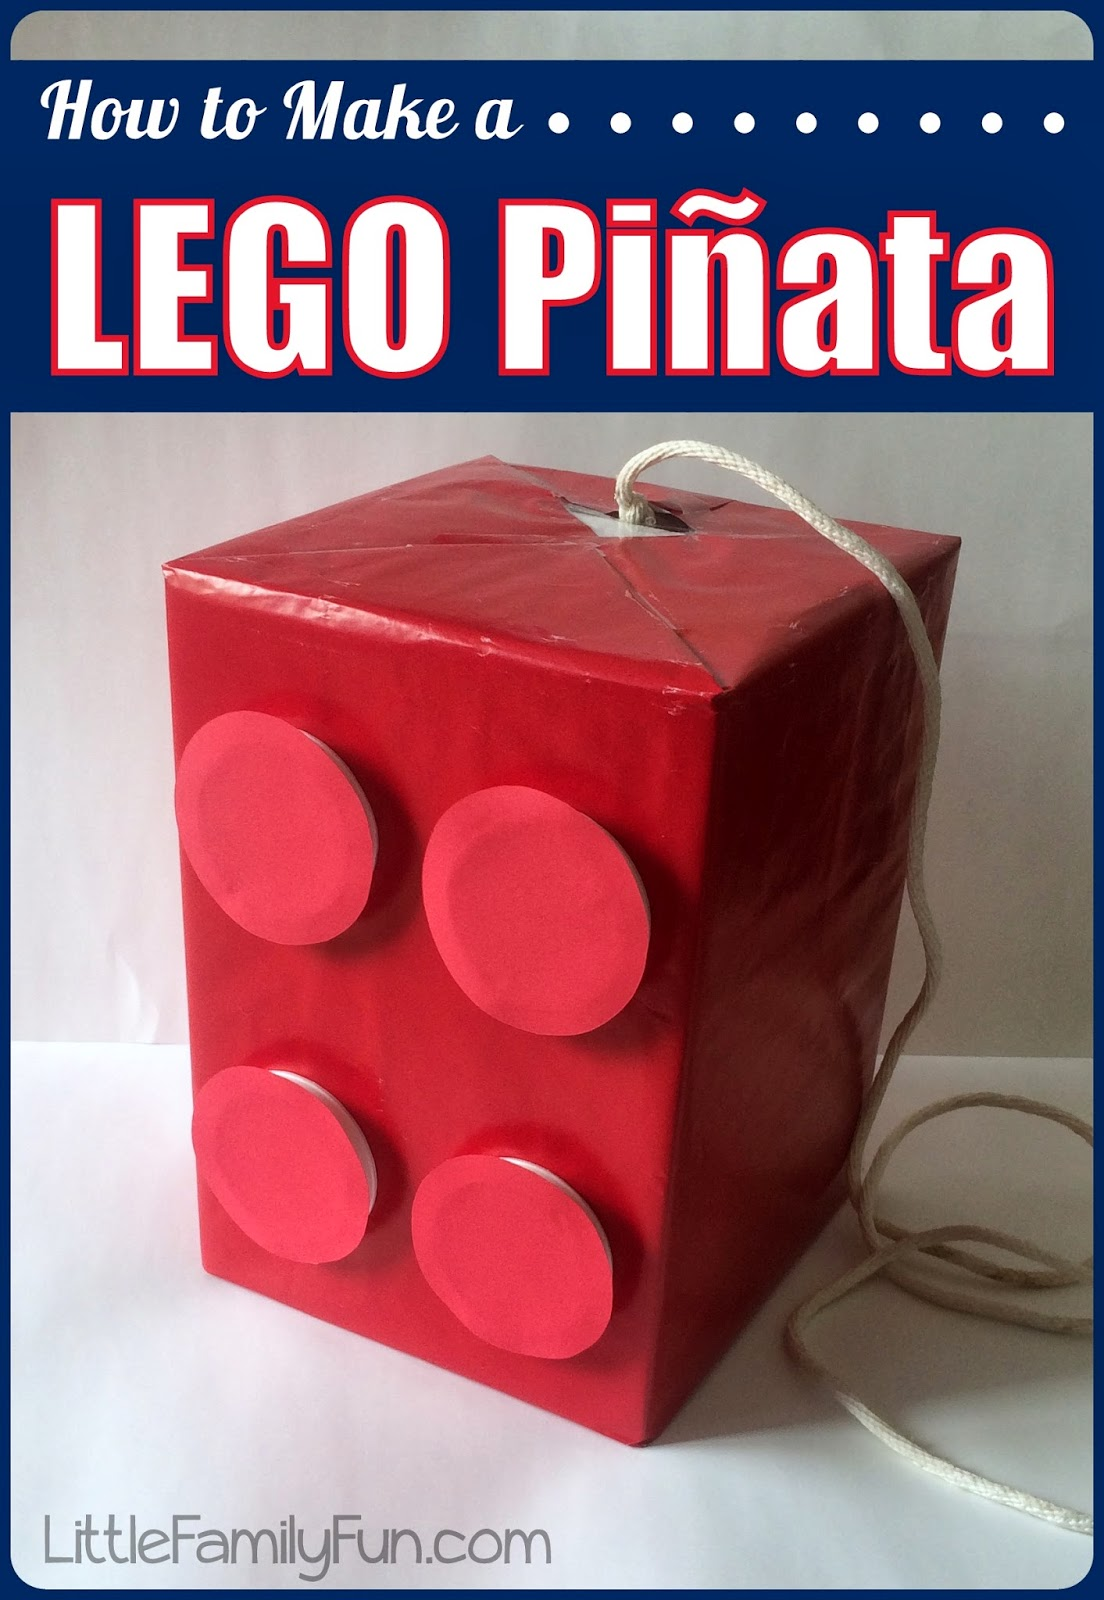 http://www.littlefamilyfun.com/2014/03/how-to-make-lego-pinata.html